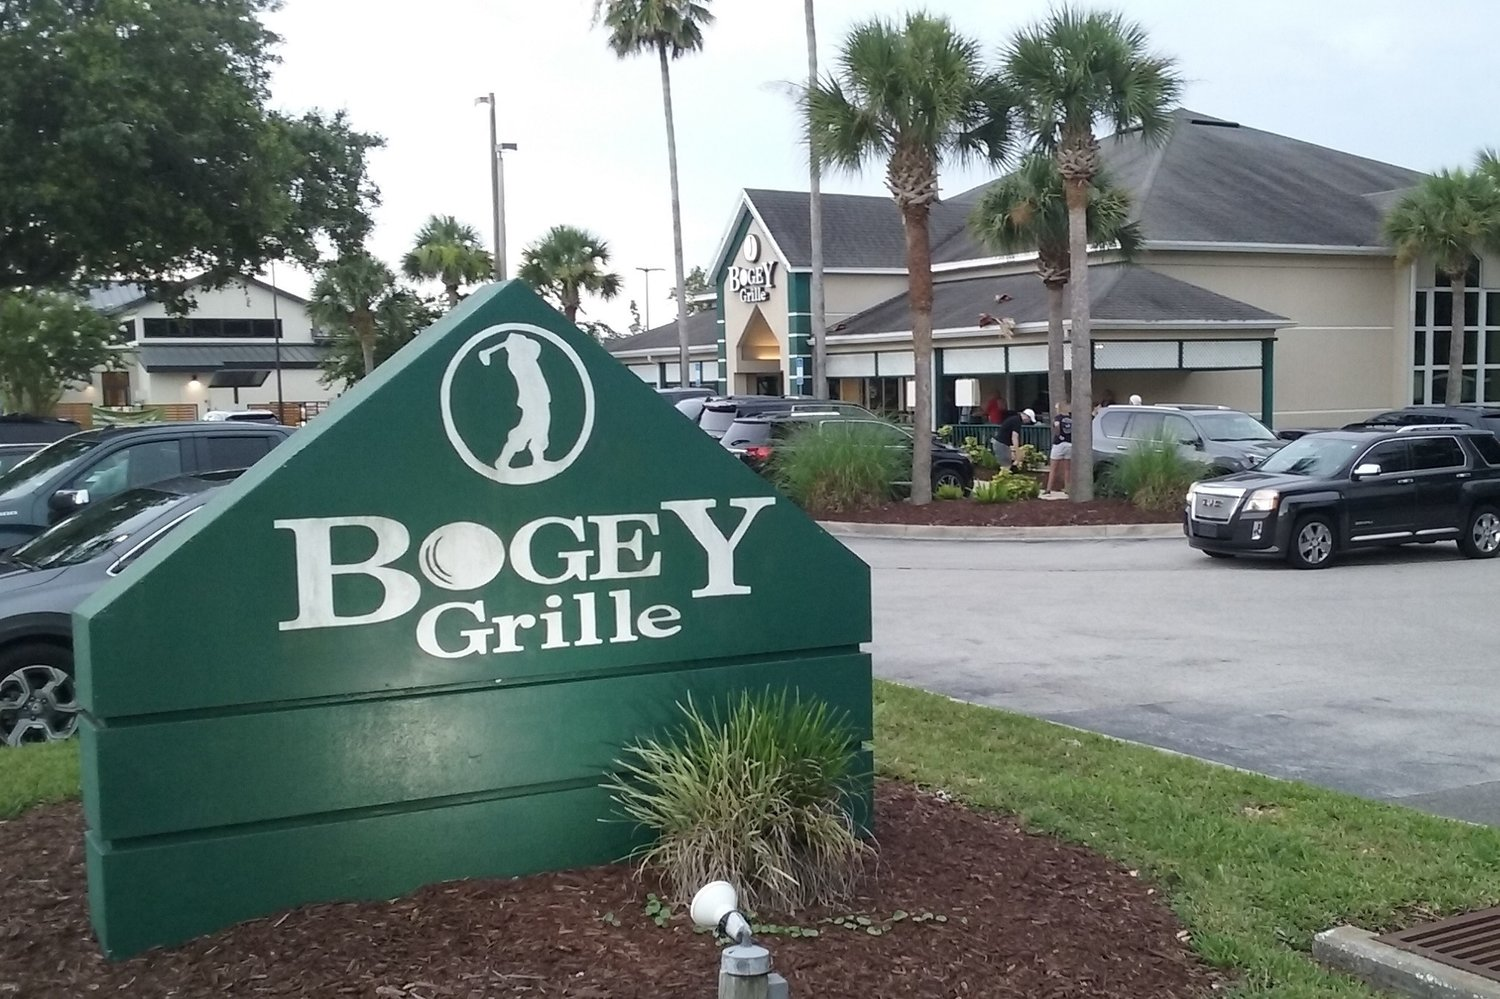 The parking lot at Bogey Grille was full Friday as patrons flocked to one of their favorite places for one last meal or a drink.